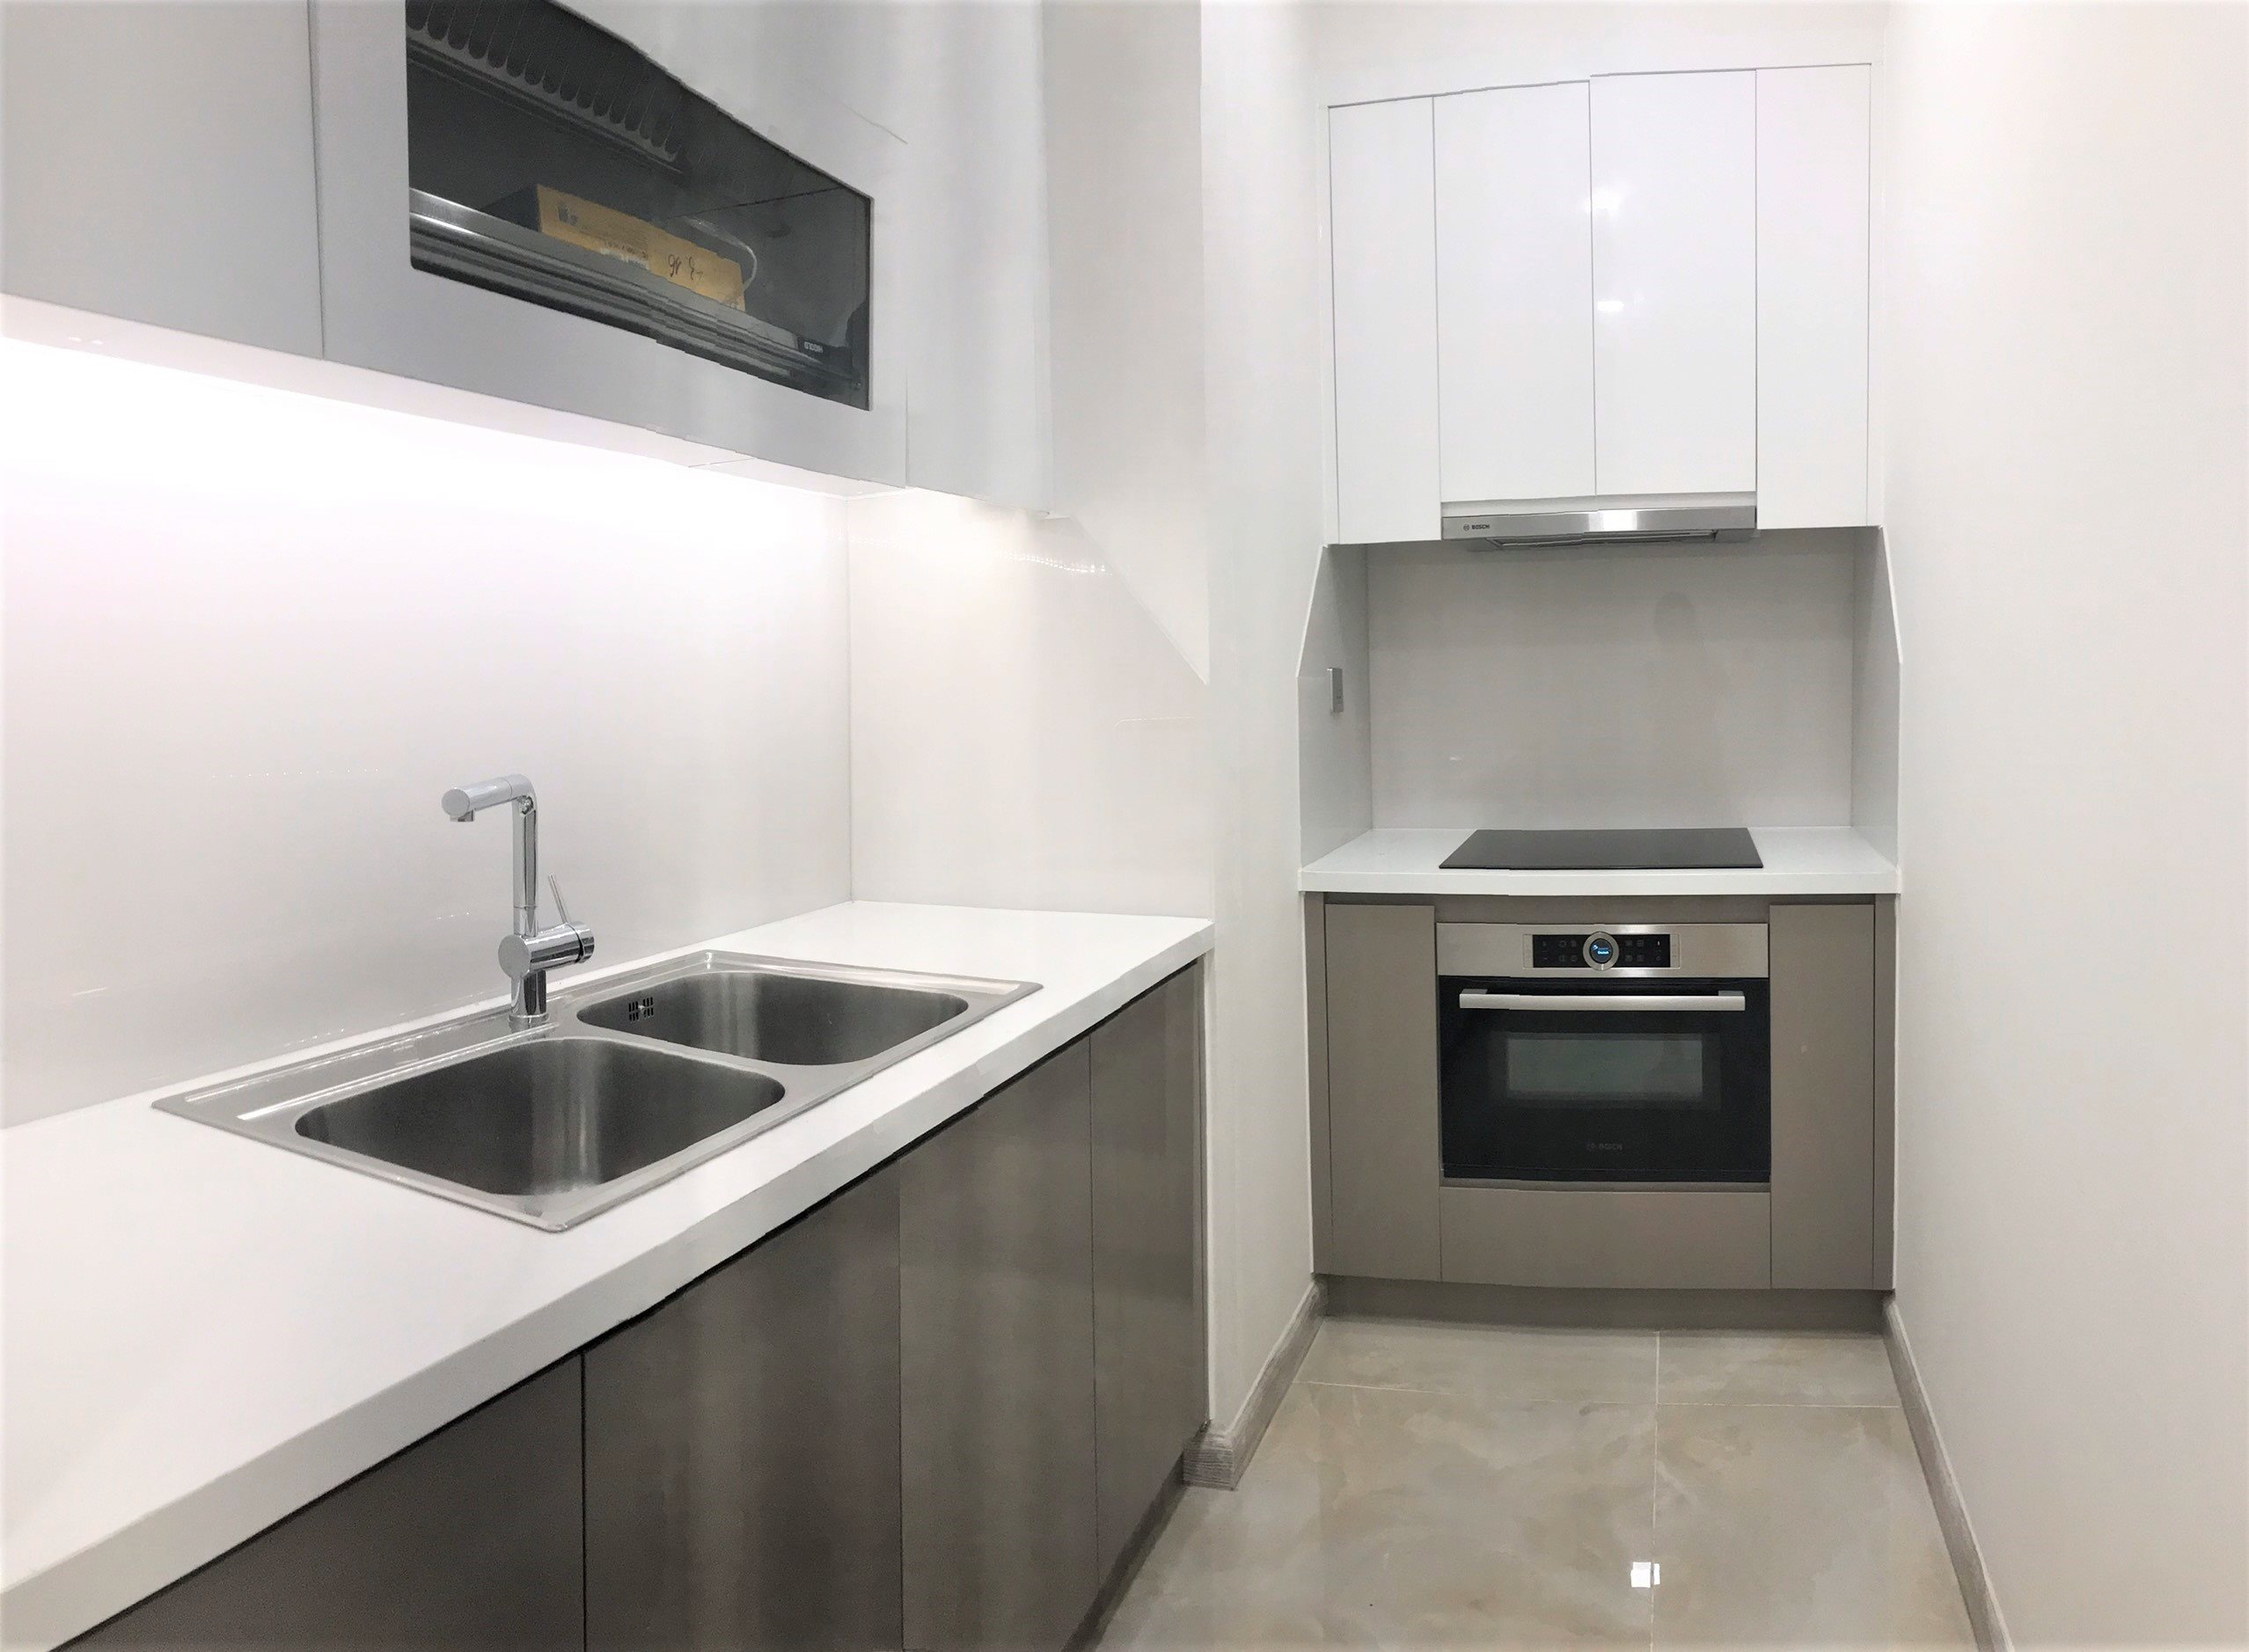 D1023259 - Vinhomes Golden River Apartment For Rent & Sale Ho Chi Minh - 1 bedroom